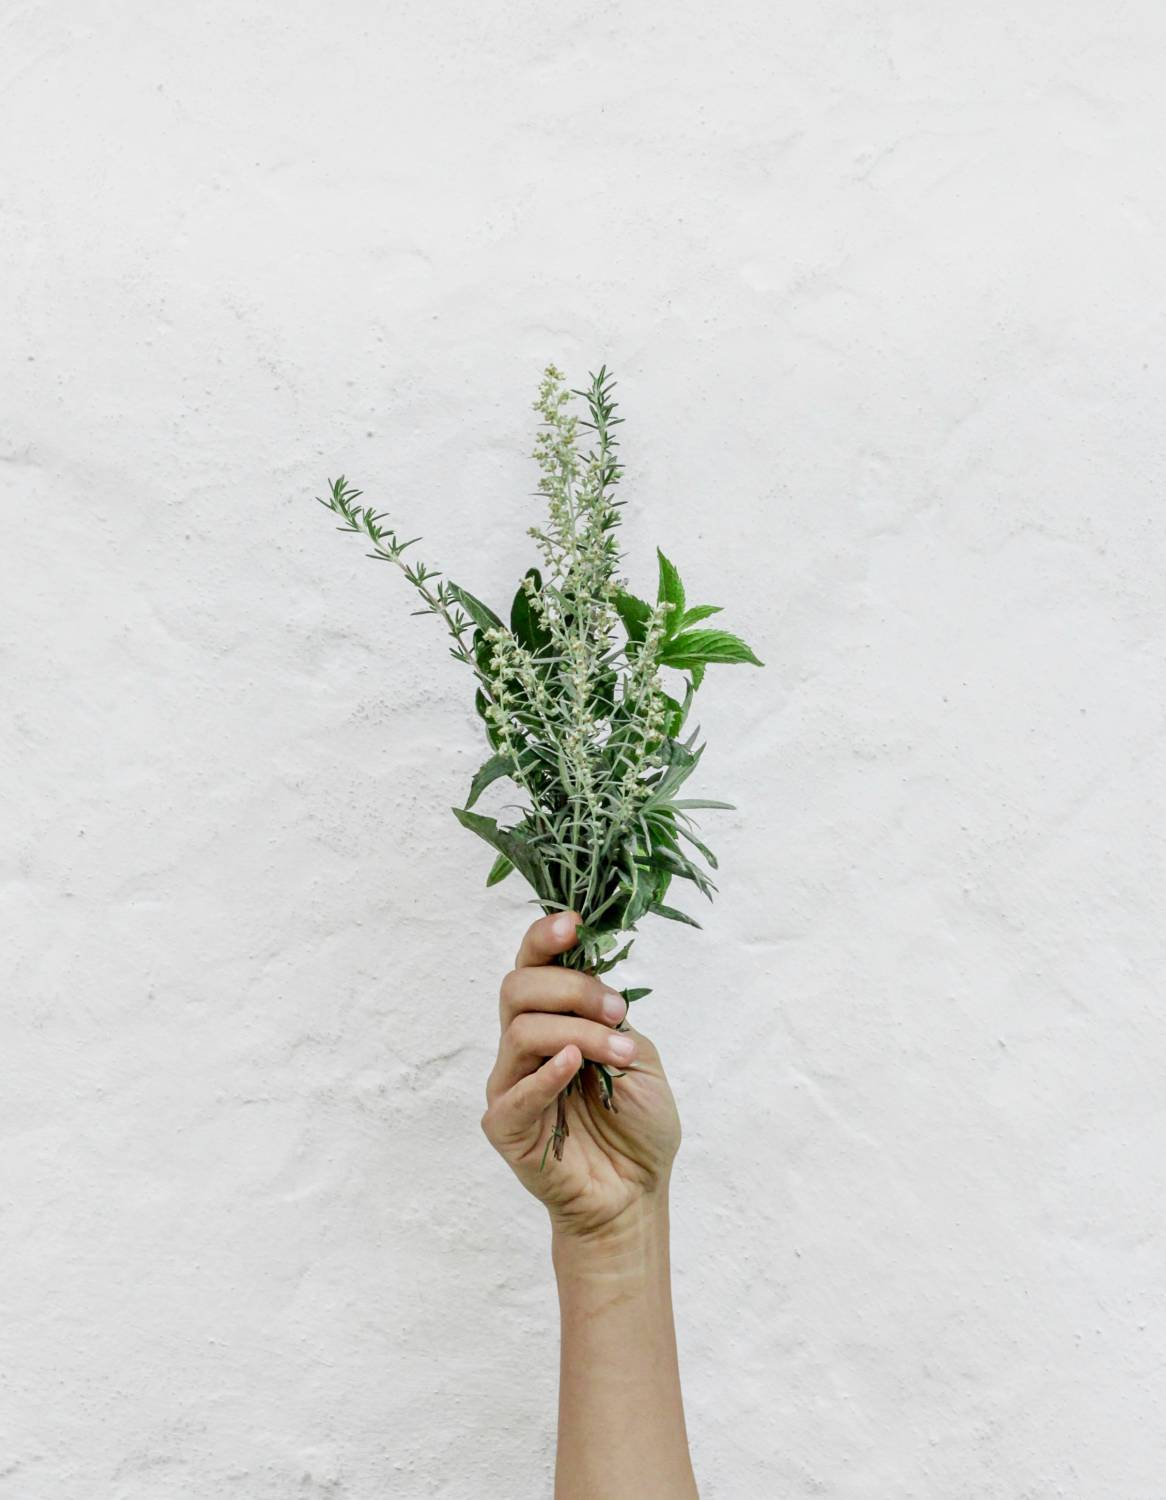 hand-holding-plants-on-white-background